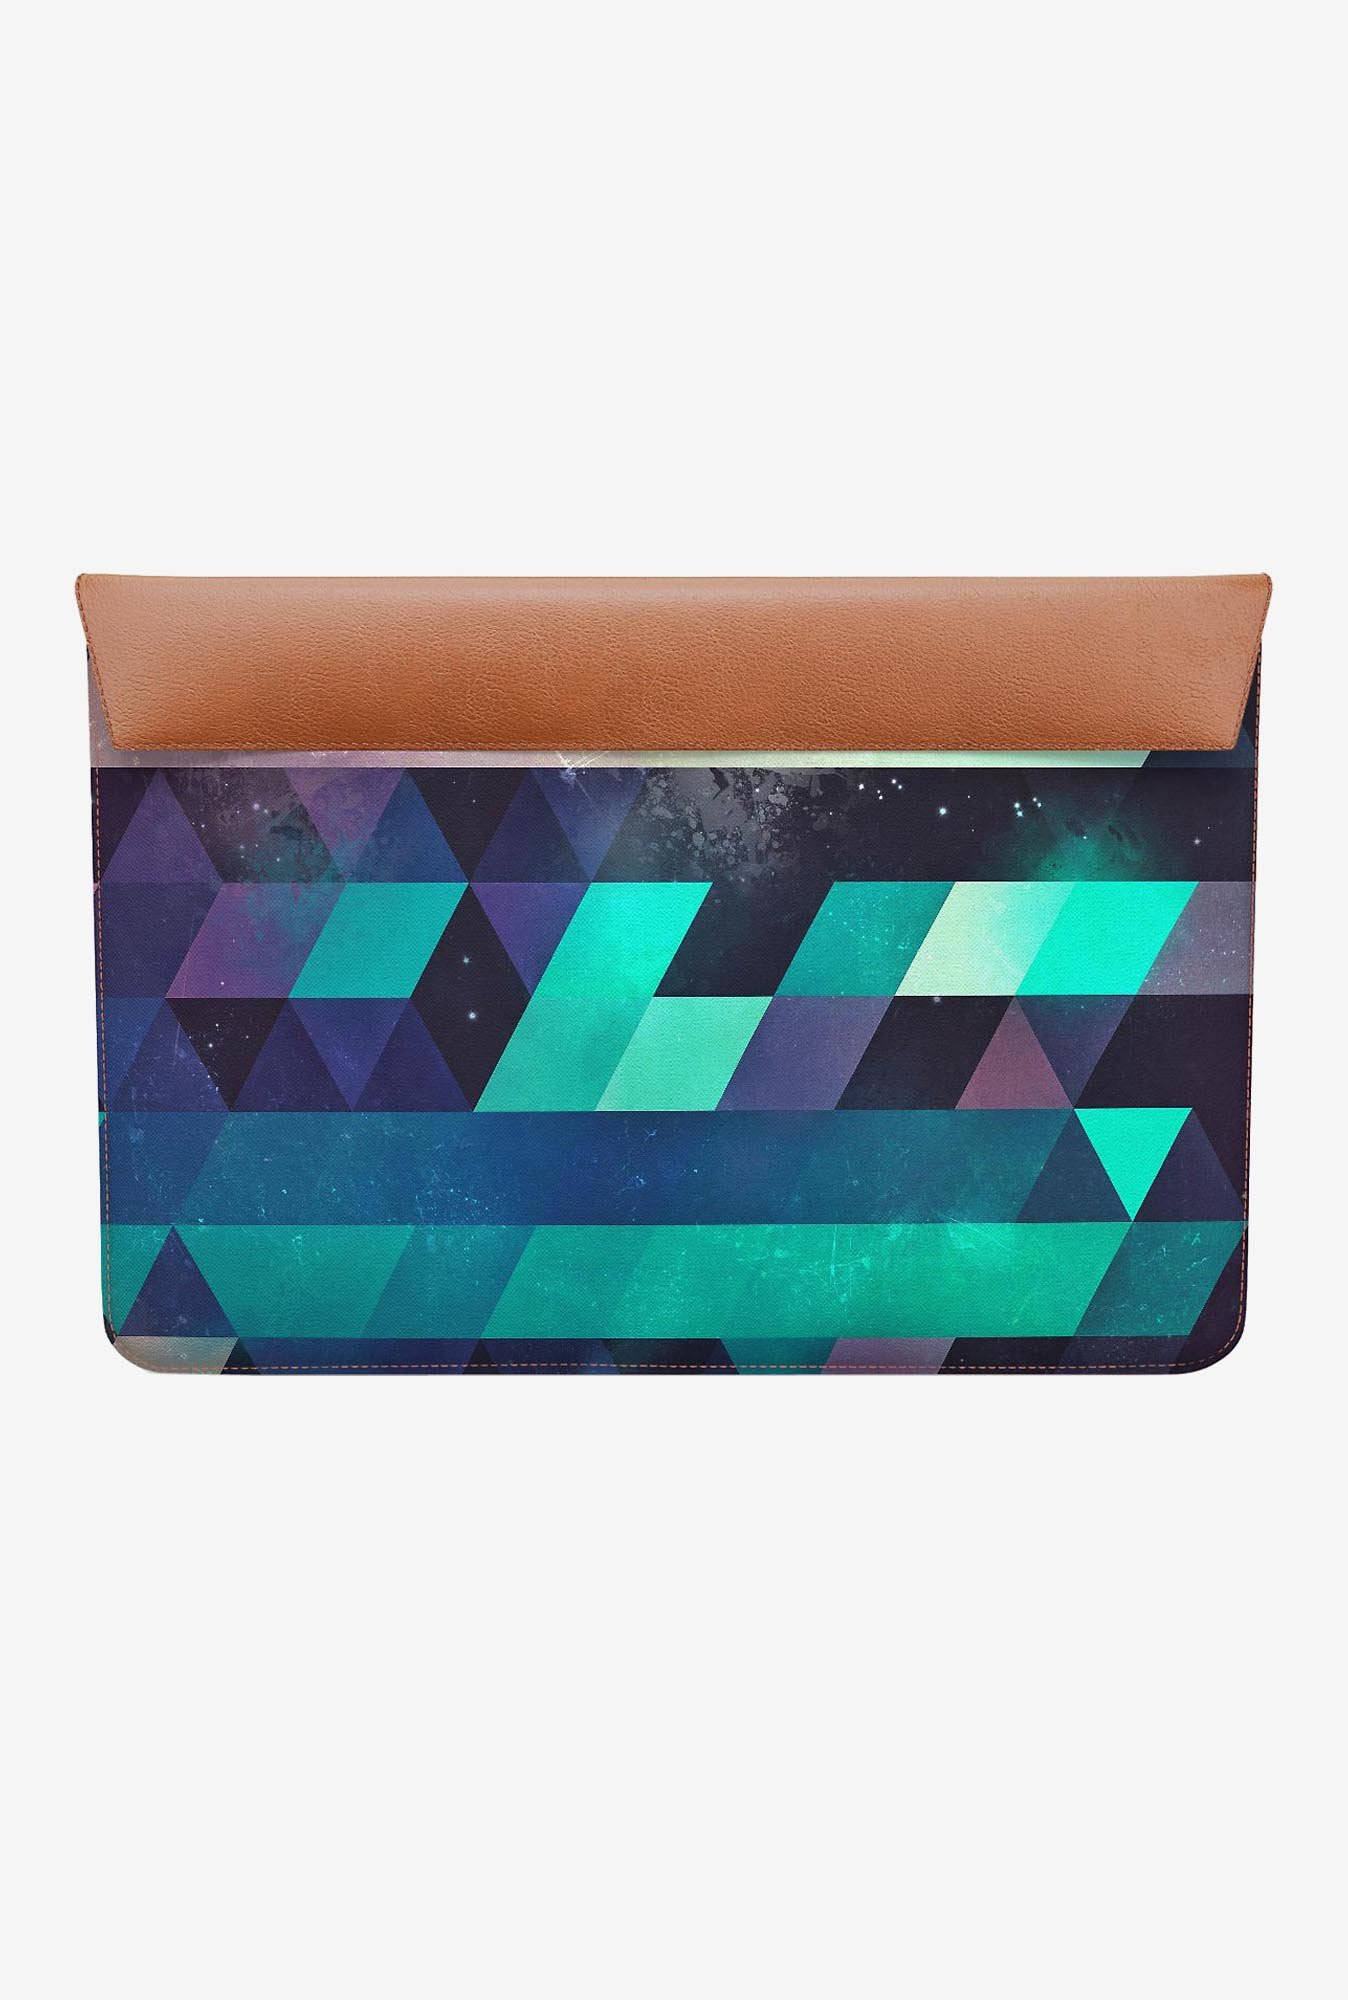 DailyObjects Cryxxstyllz MacBook Pro 13 Envelope Sleeve